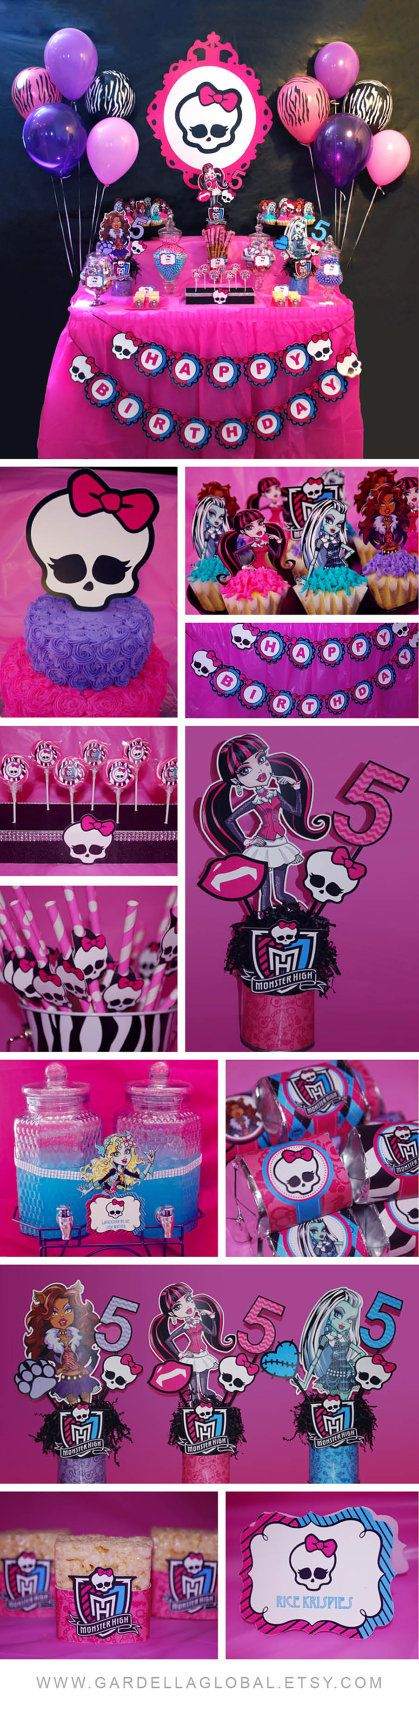 Monster High Birthday Party Ideas | Monster high party, Monster ...